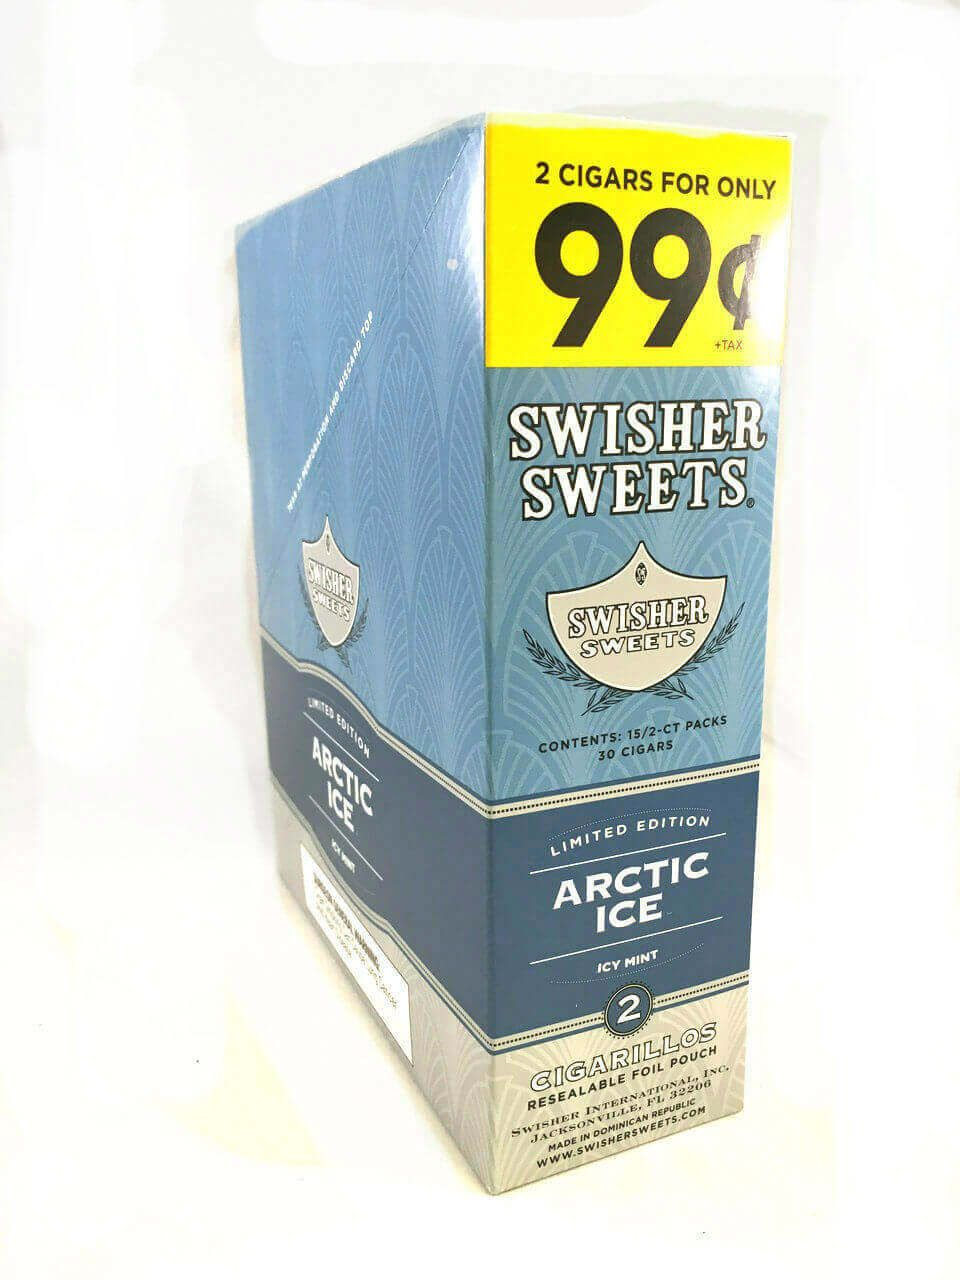 Swisher Sweets Cigarillos 99 Cent Pre Priced 30 Packs of 2 Cigars Summer  Twist - Cigars - Tobacco Products - TobaccoStock.com